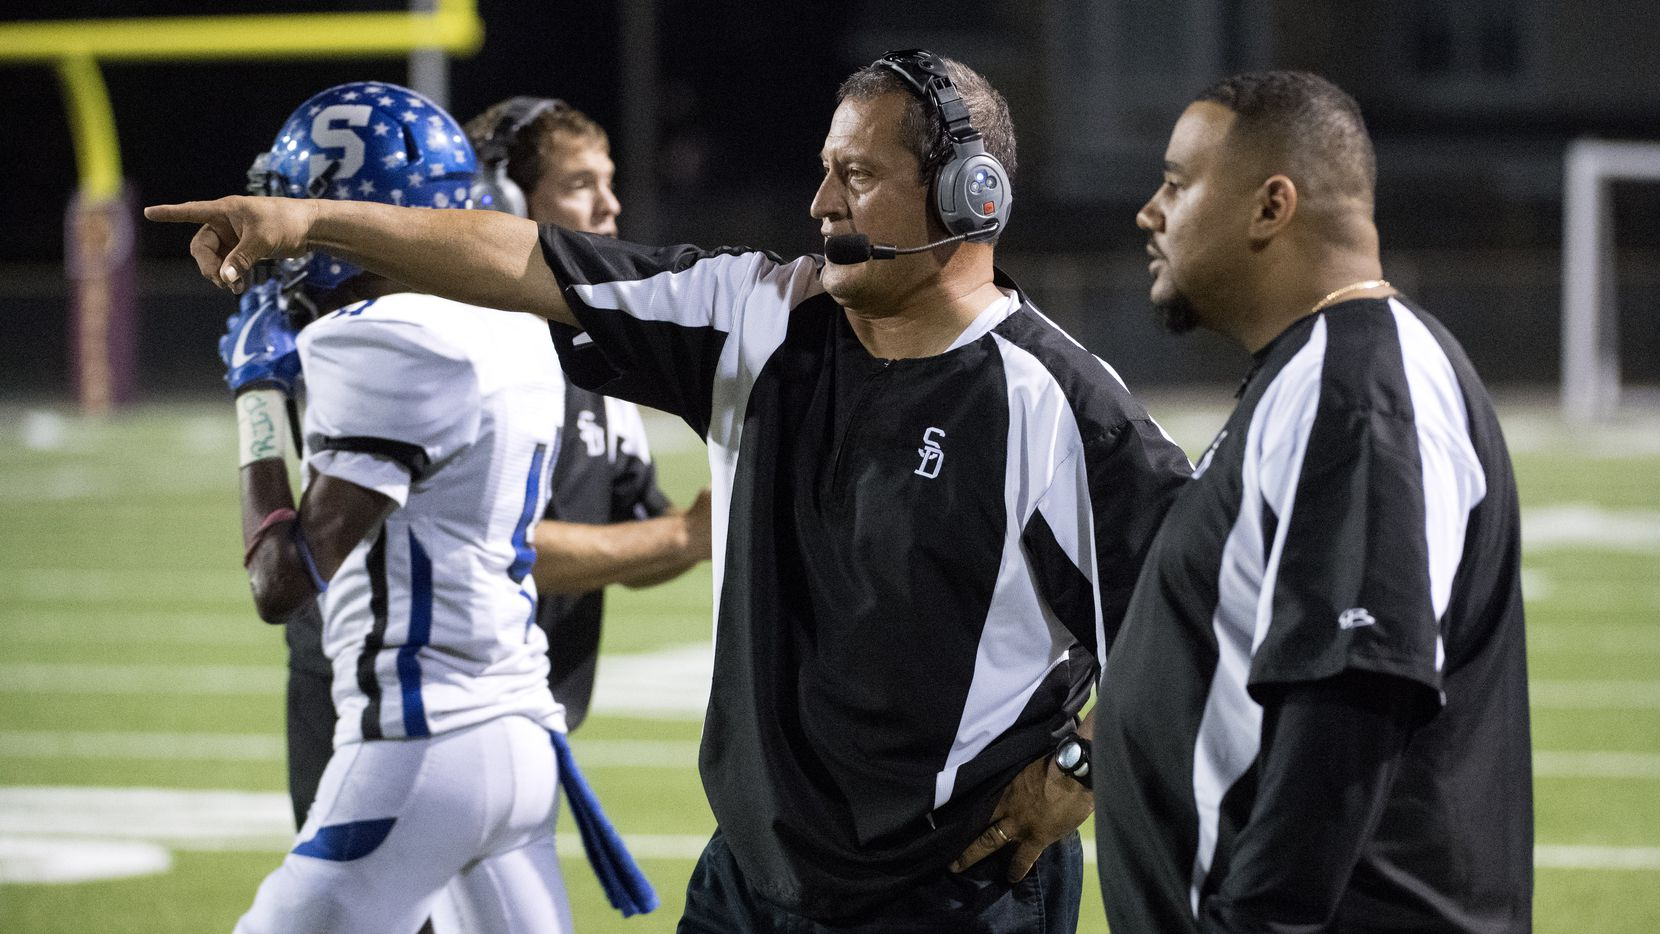 Seagoville head coach Andy Gutierrez confers with another coach during the second half of a high school football game against Bryan Adams on Friday, October 13, 2017 at Forester Field Dallas.